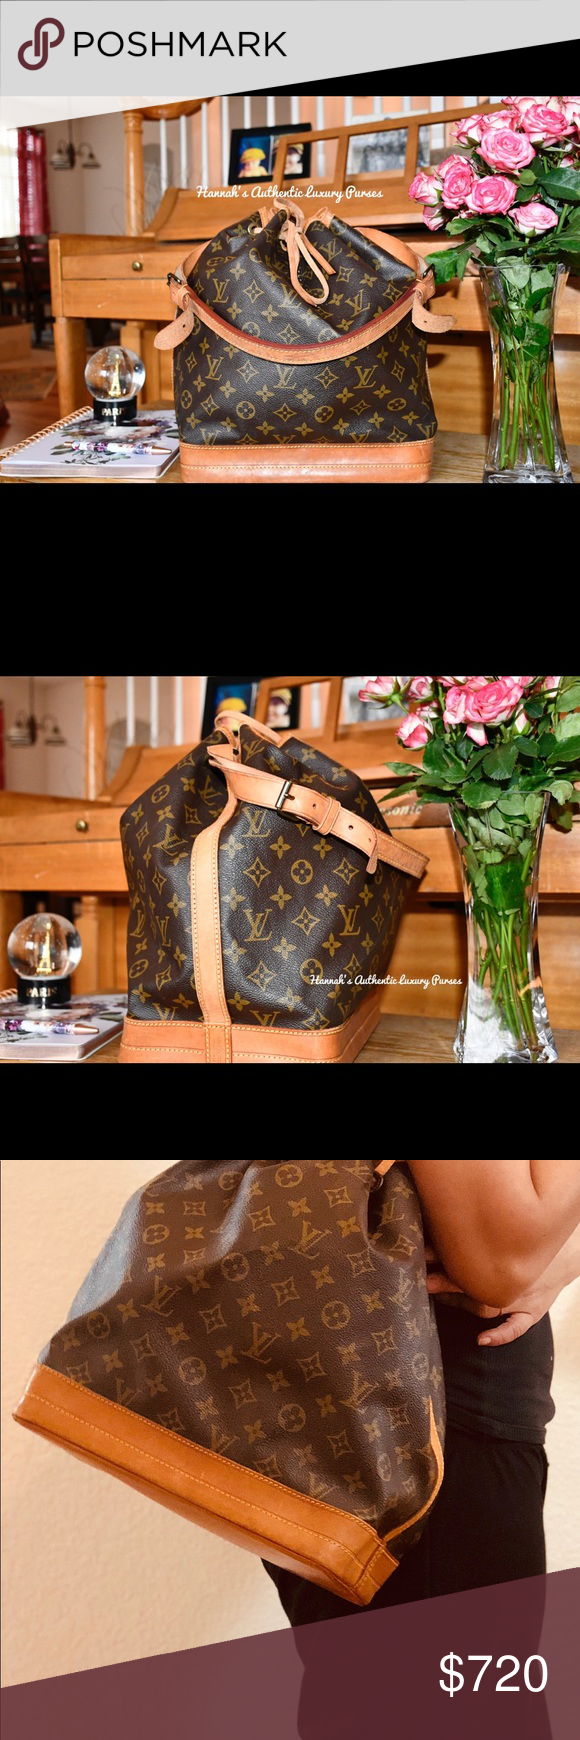 """Authentic Louis Vuitton Monogram Noe draw string Back in stock this beautiful draw string and stylish bag. This is a well pre-loved bag that can be so handy on a daily runs or even on any trips. The vachetta cowhide leather strap is still in great shape and its adjustable. The bottom and sides of the bag has some few spots/water marks(picture is included to further determine) Does not come with a dust bag. Measurement: 10.2""""L x 13.4""""W x 7.5""""H Date Code: A2882, Made in France  FB: Hannah's Authentic Luxury Purses Louis Vuitton Bags Shoulder Bags"""